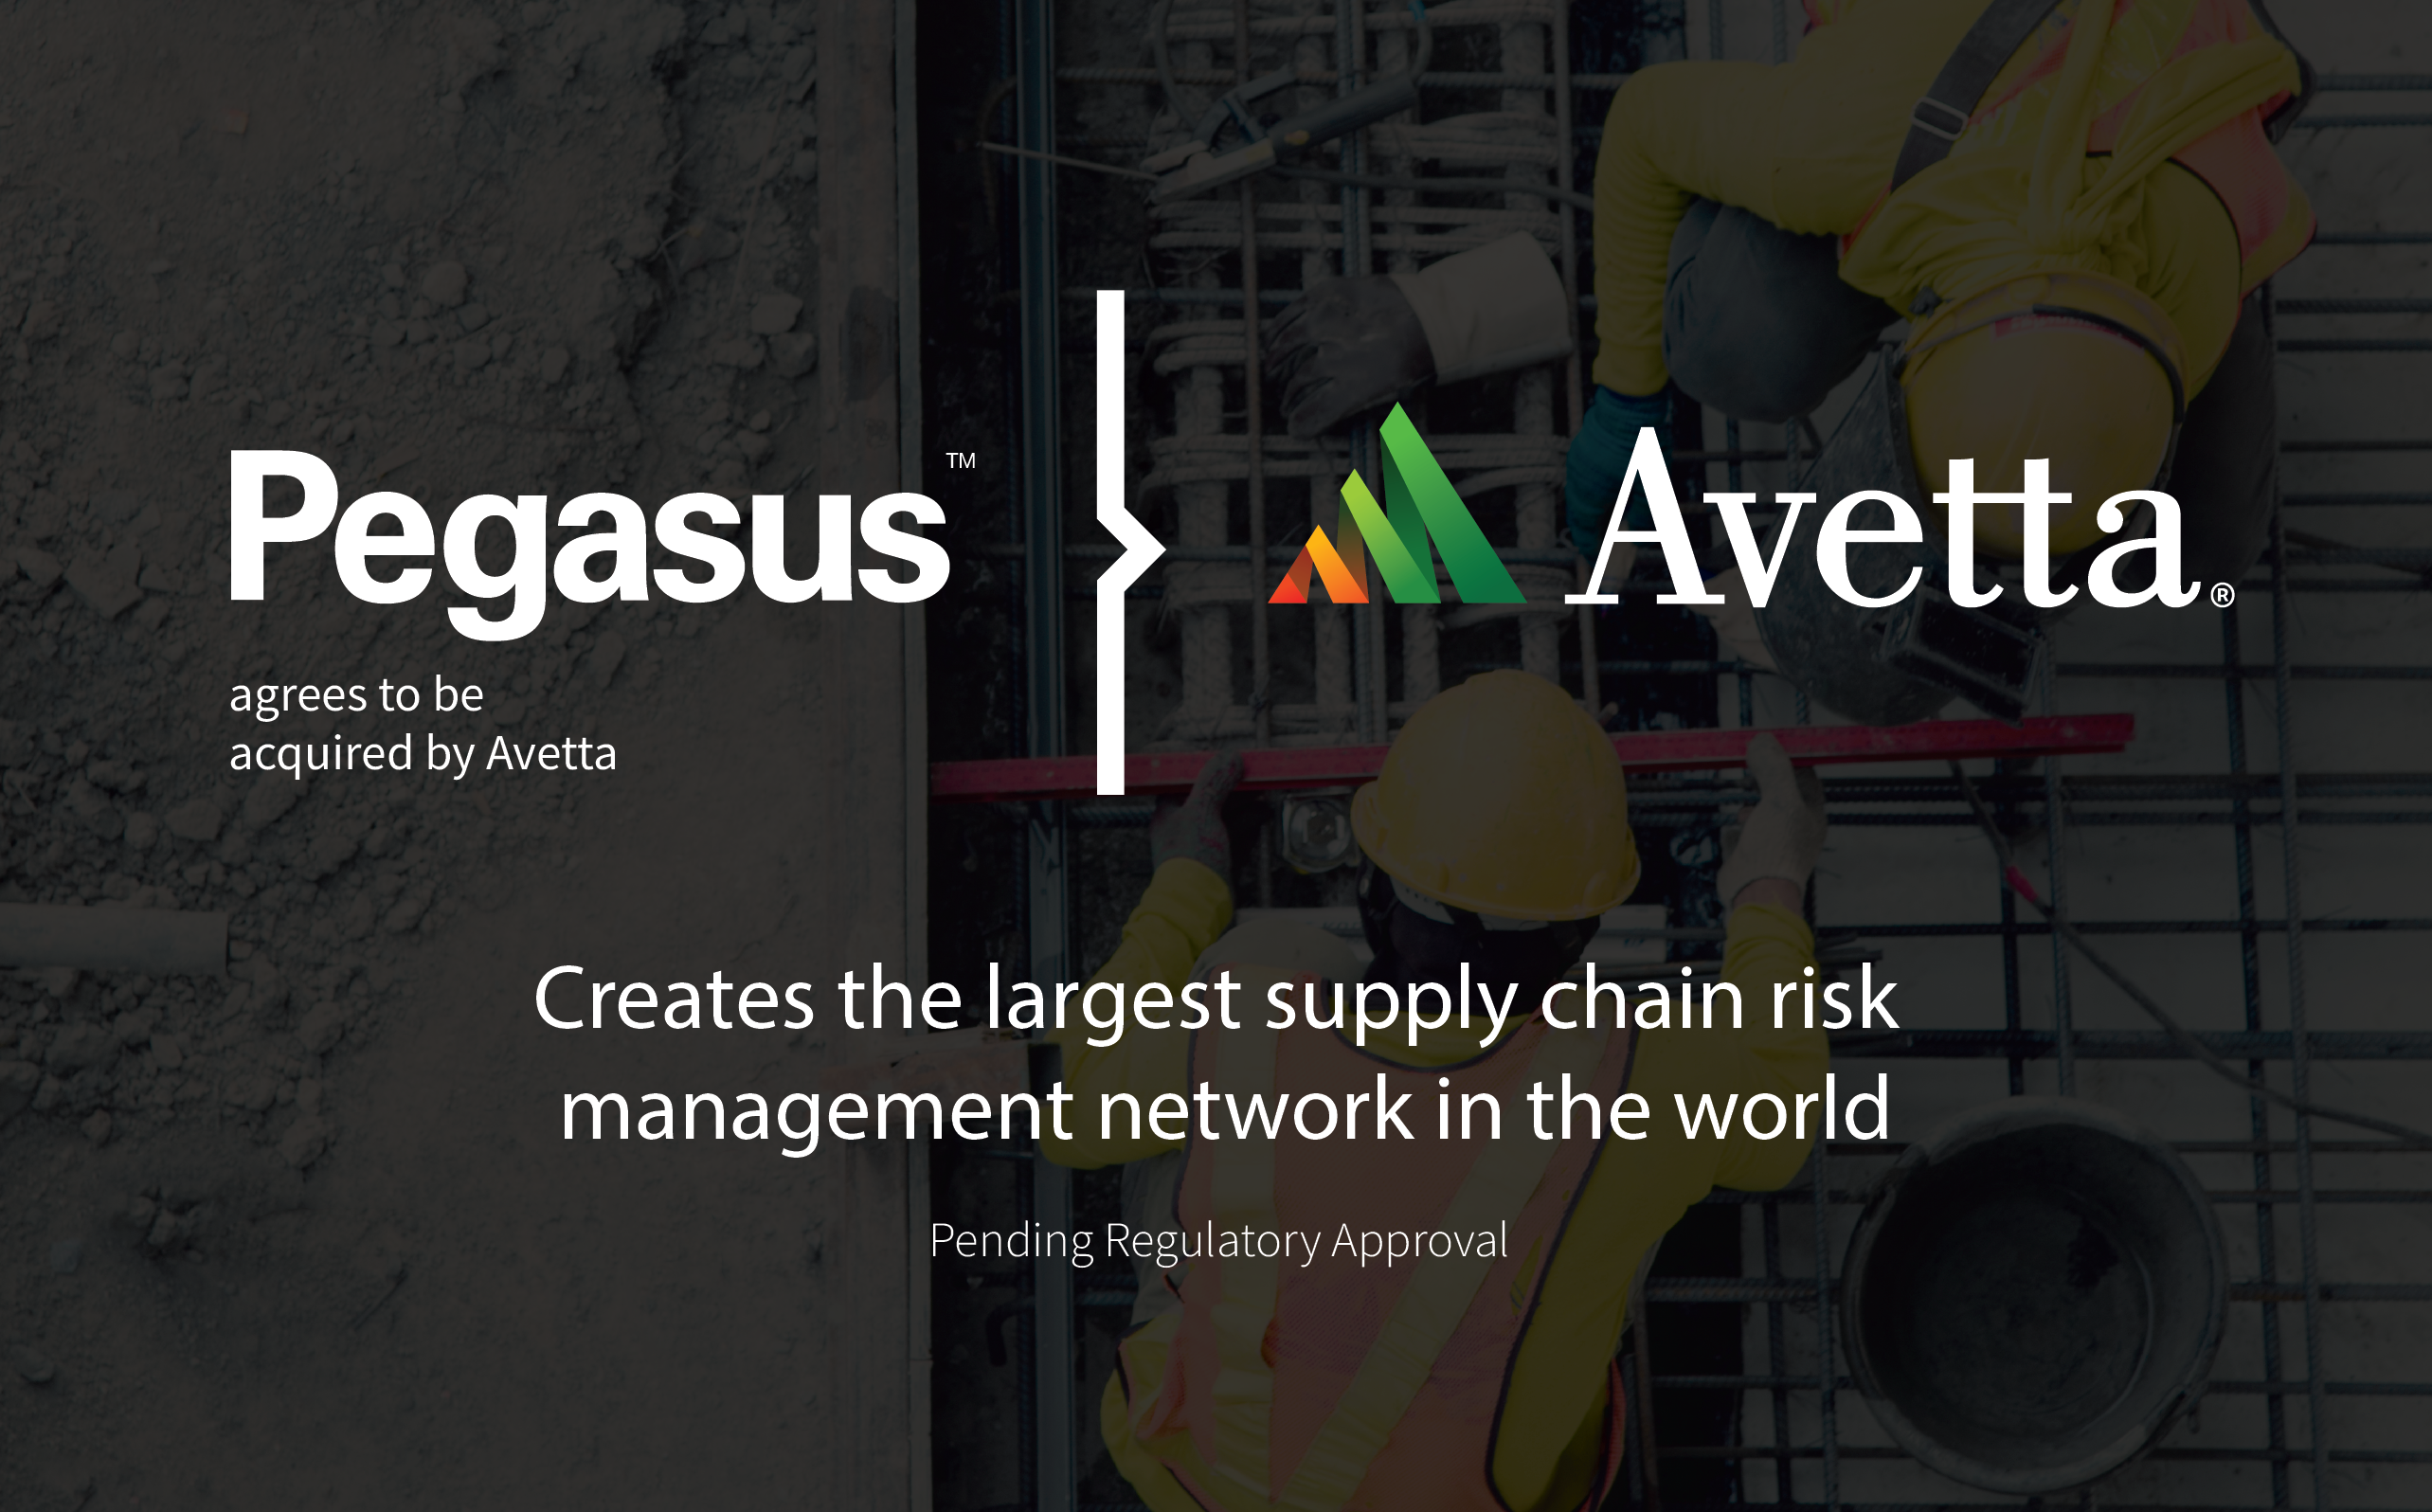 Australian Software Leader Pegasus Agrees To Be Acquired by US-based Avetta